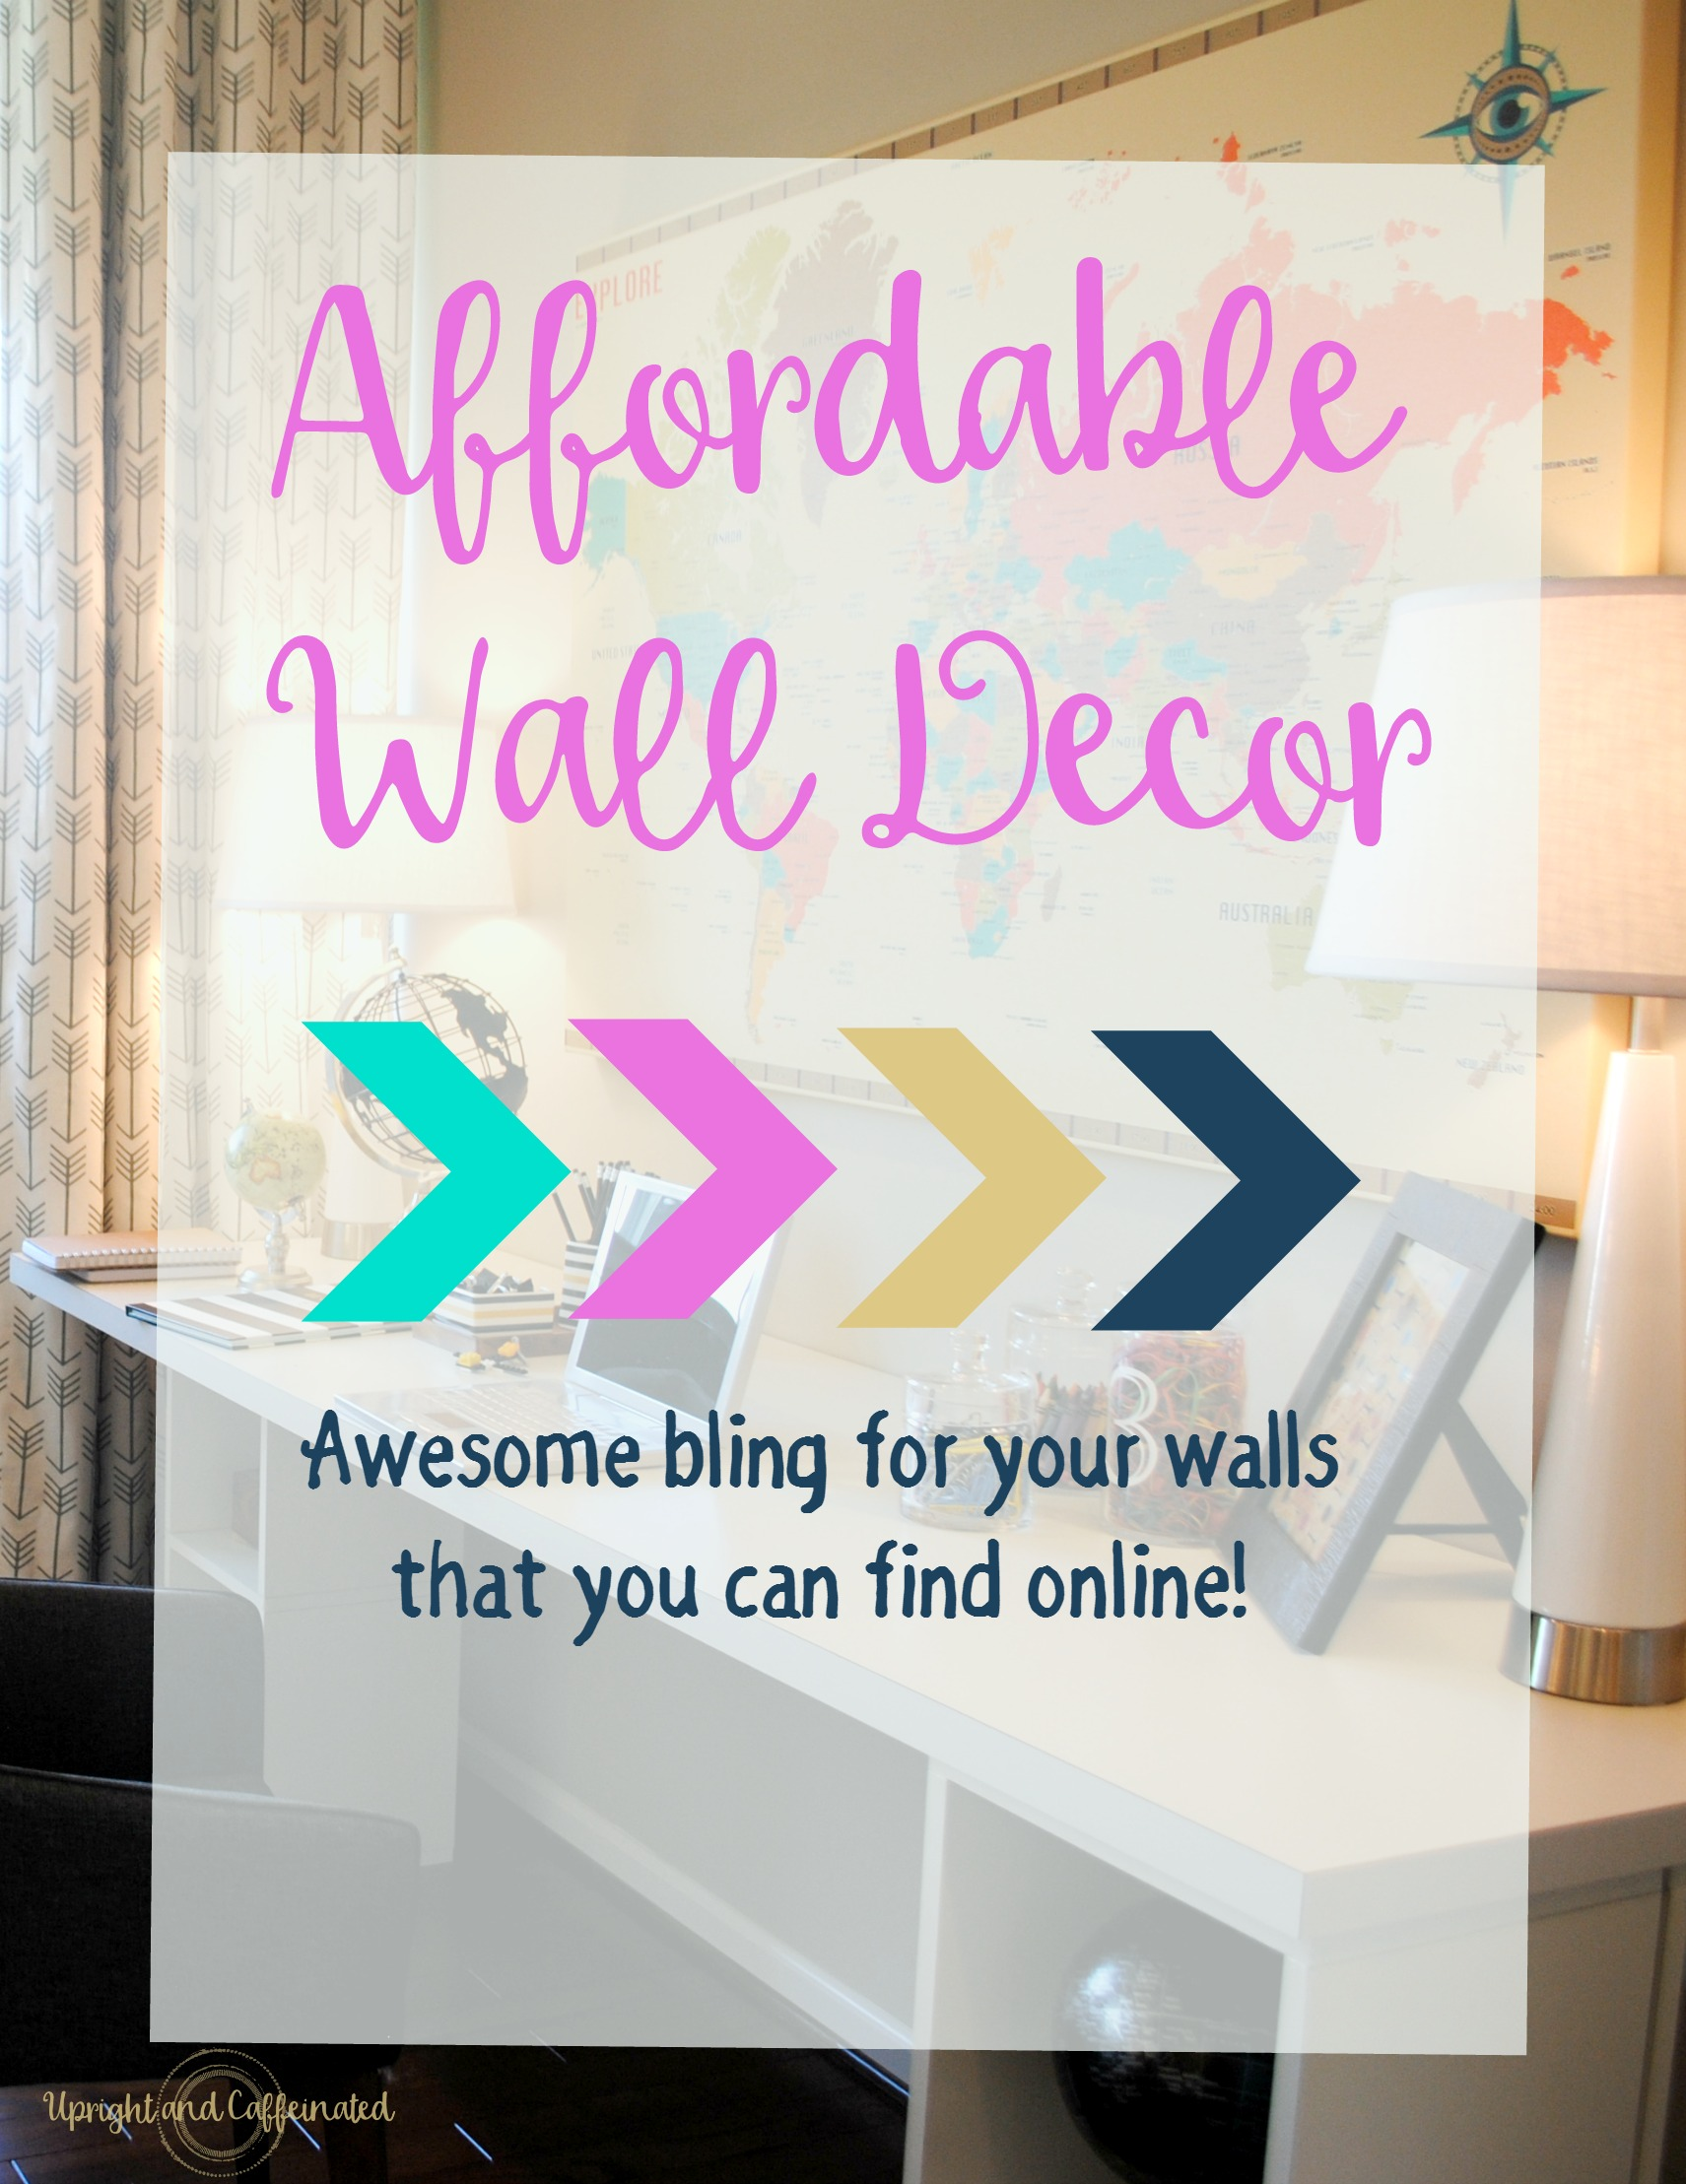 Best Affordable Wall Decor Upright And Caffeinated This Month